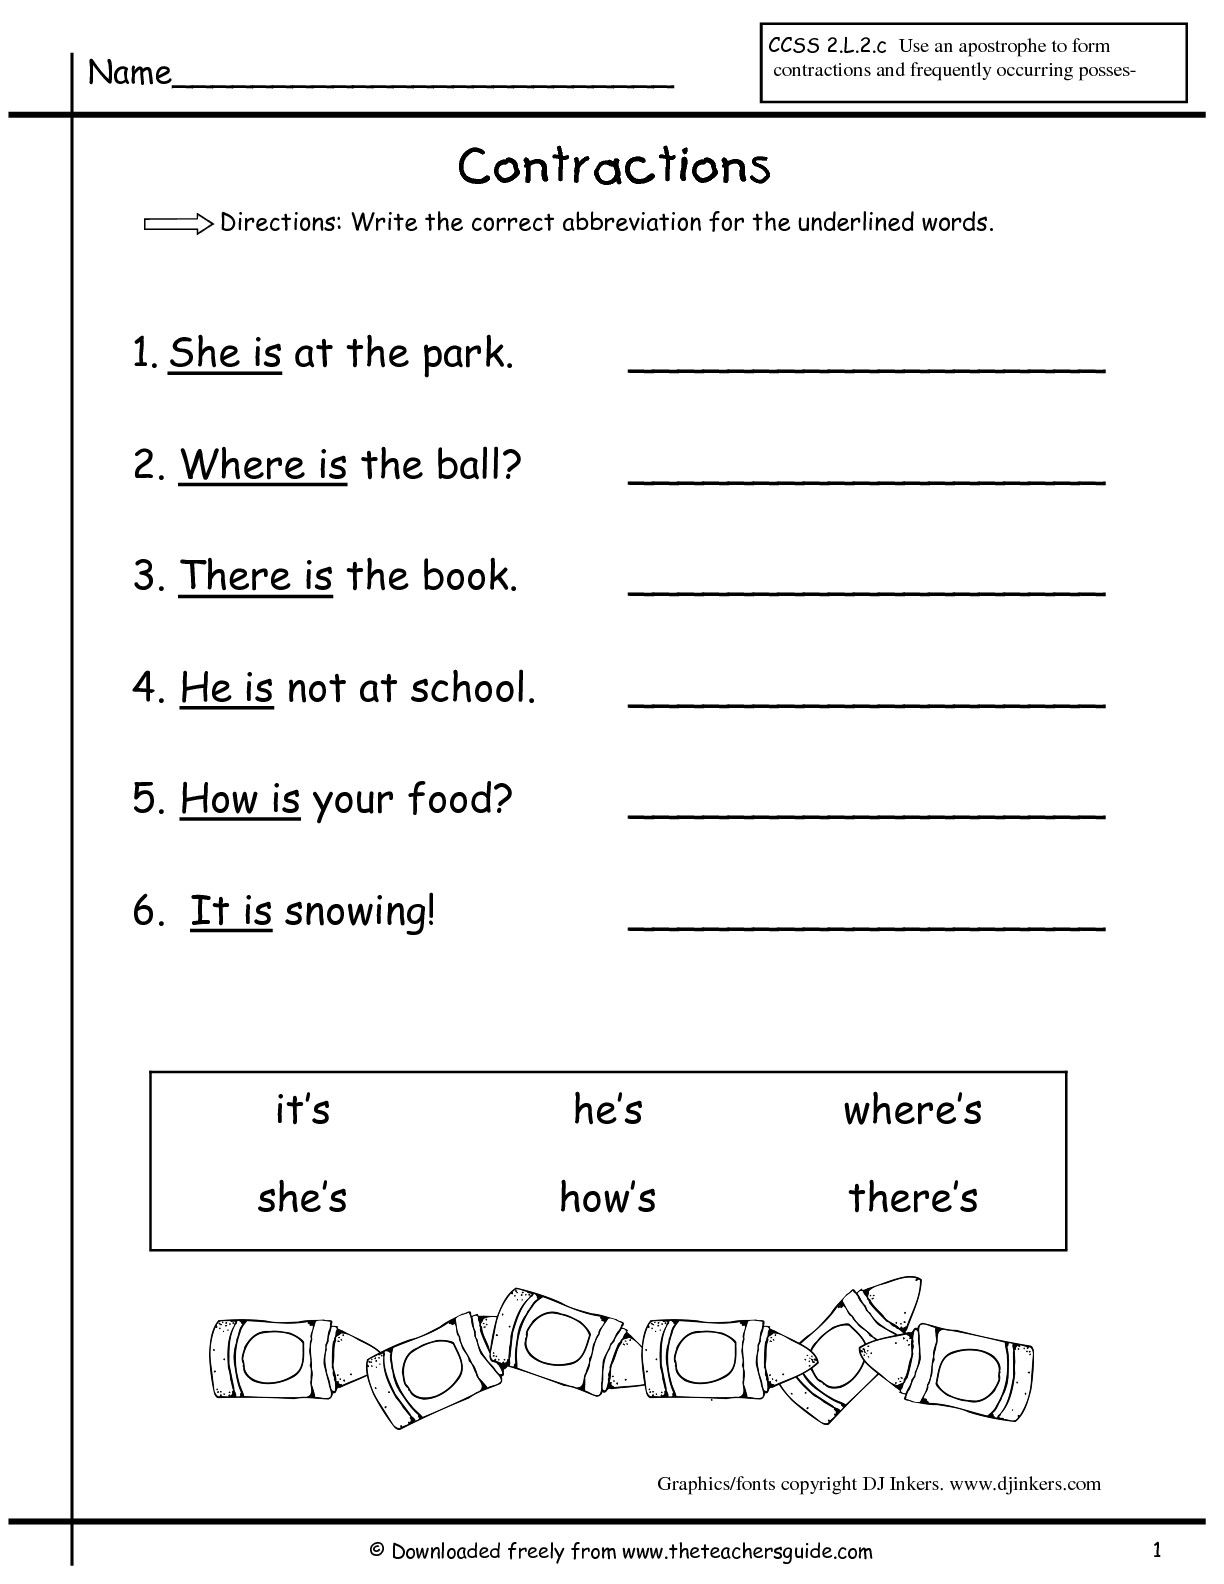 Contraction Worksheets 1st Grade